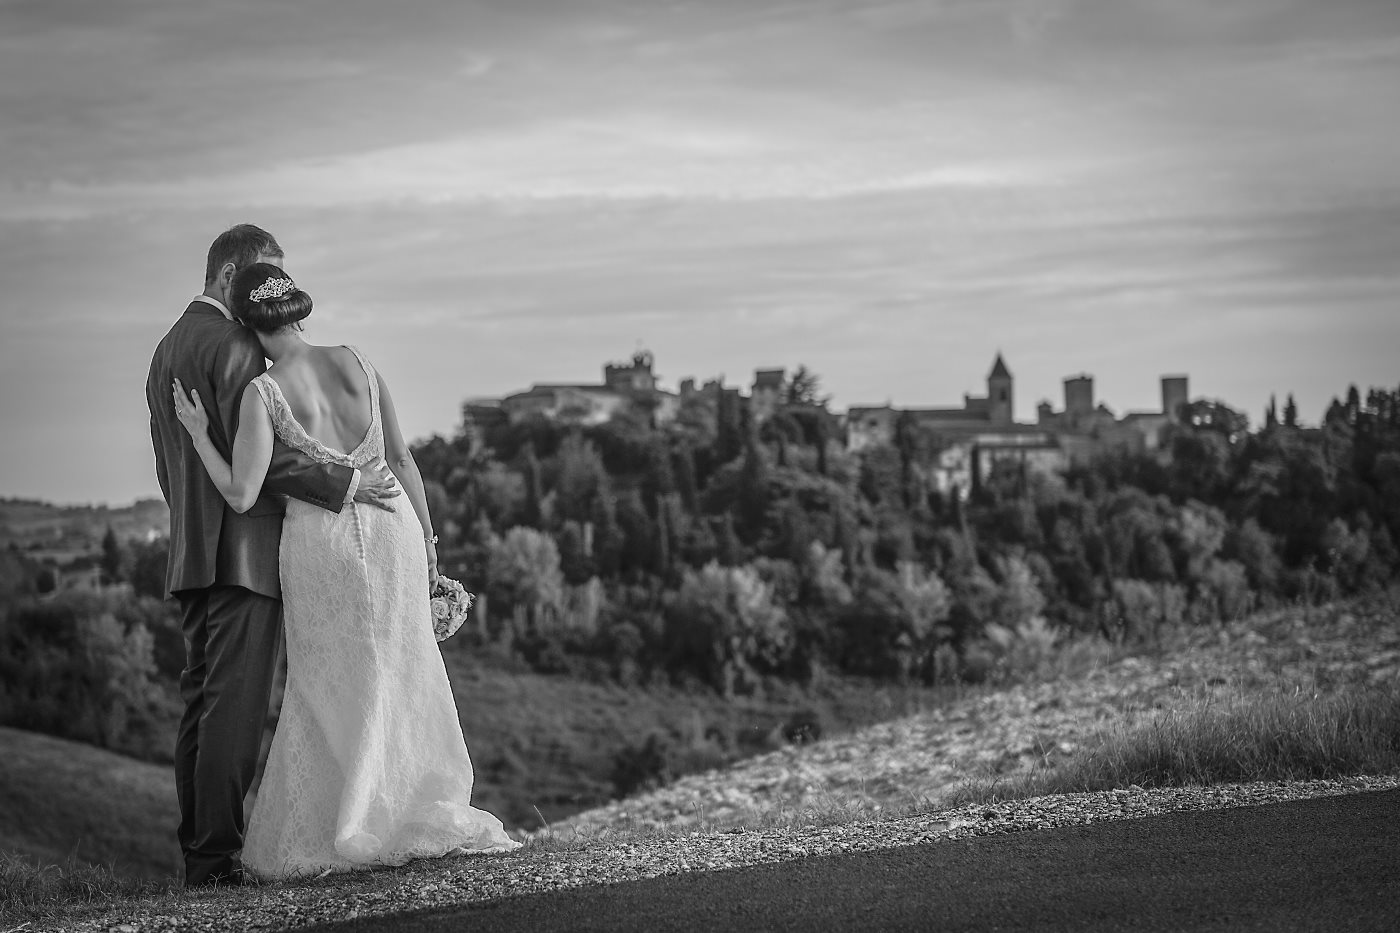 wedding photos certaldo alto_18.jpg